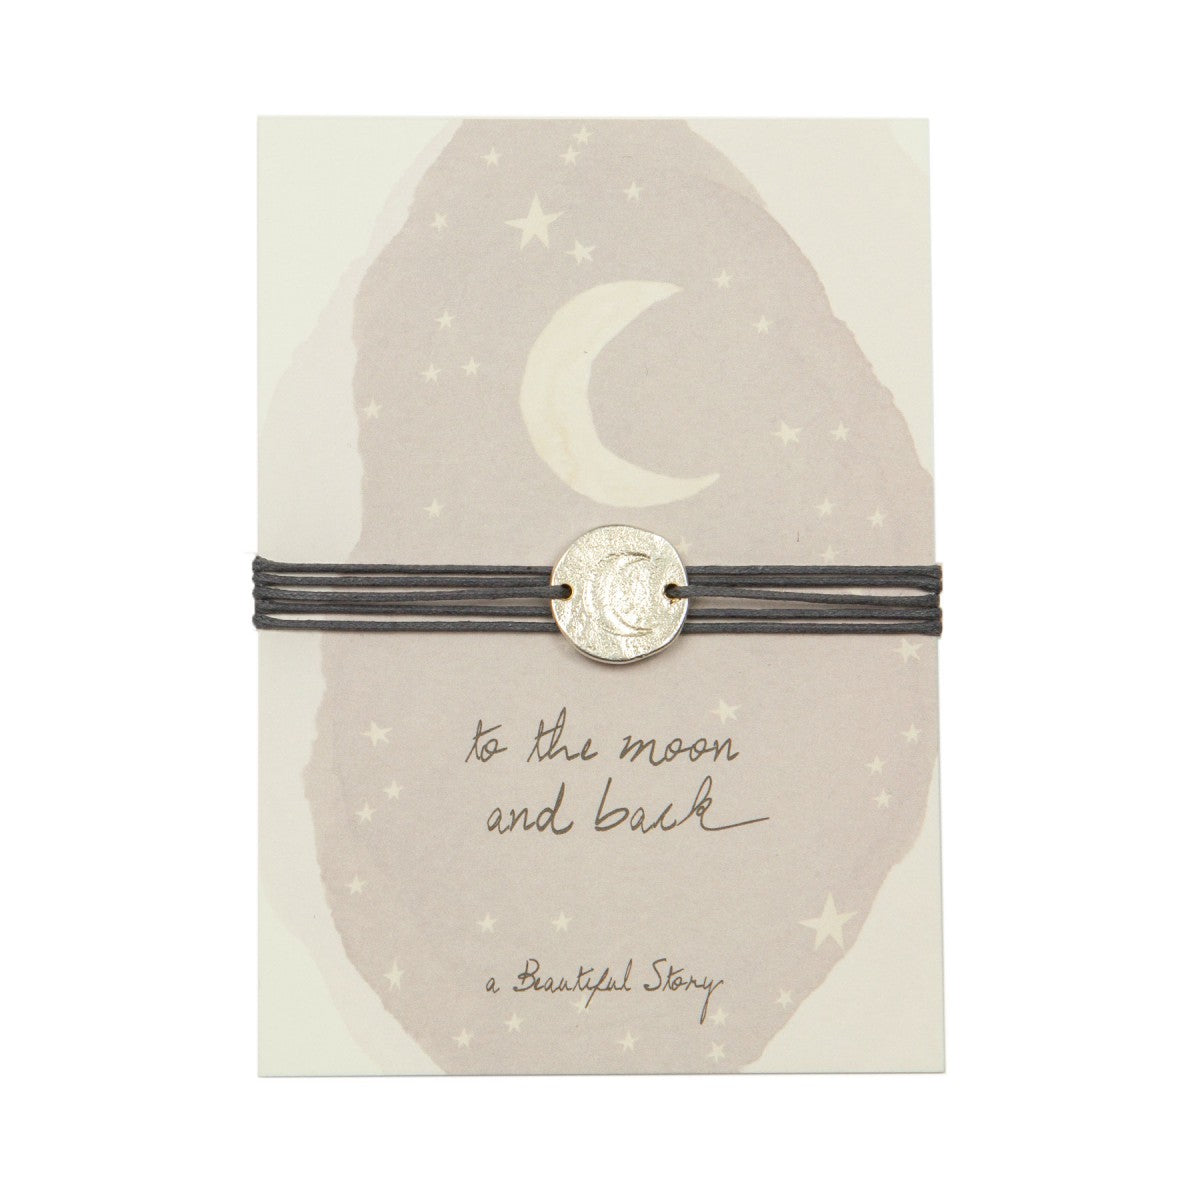 A Beautiful Story - jewelry postcard moon - to the moon an back